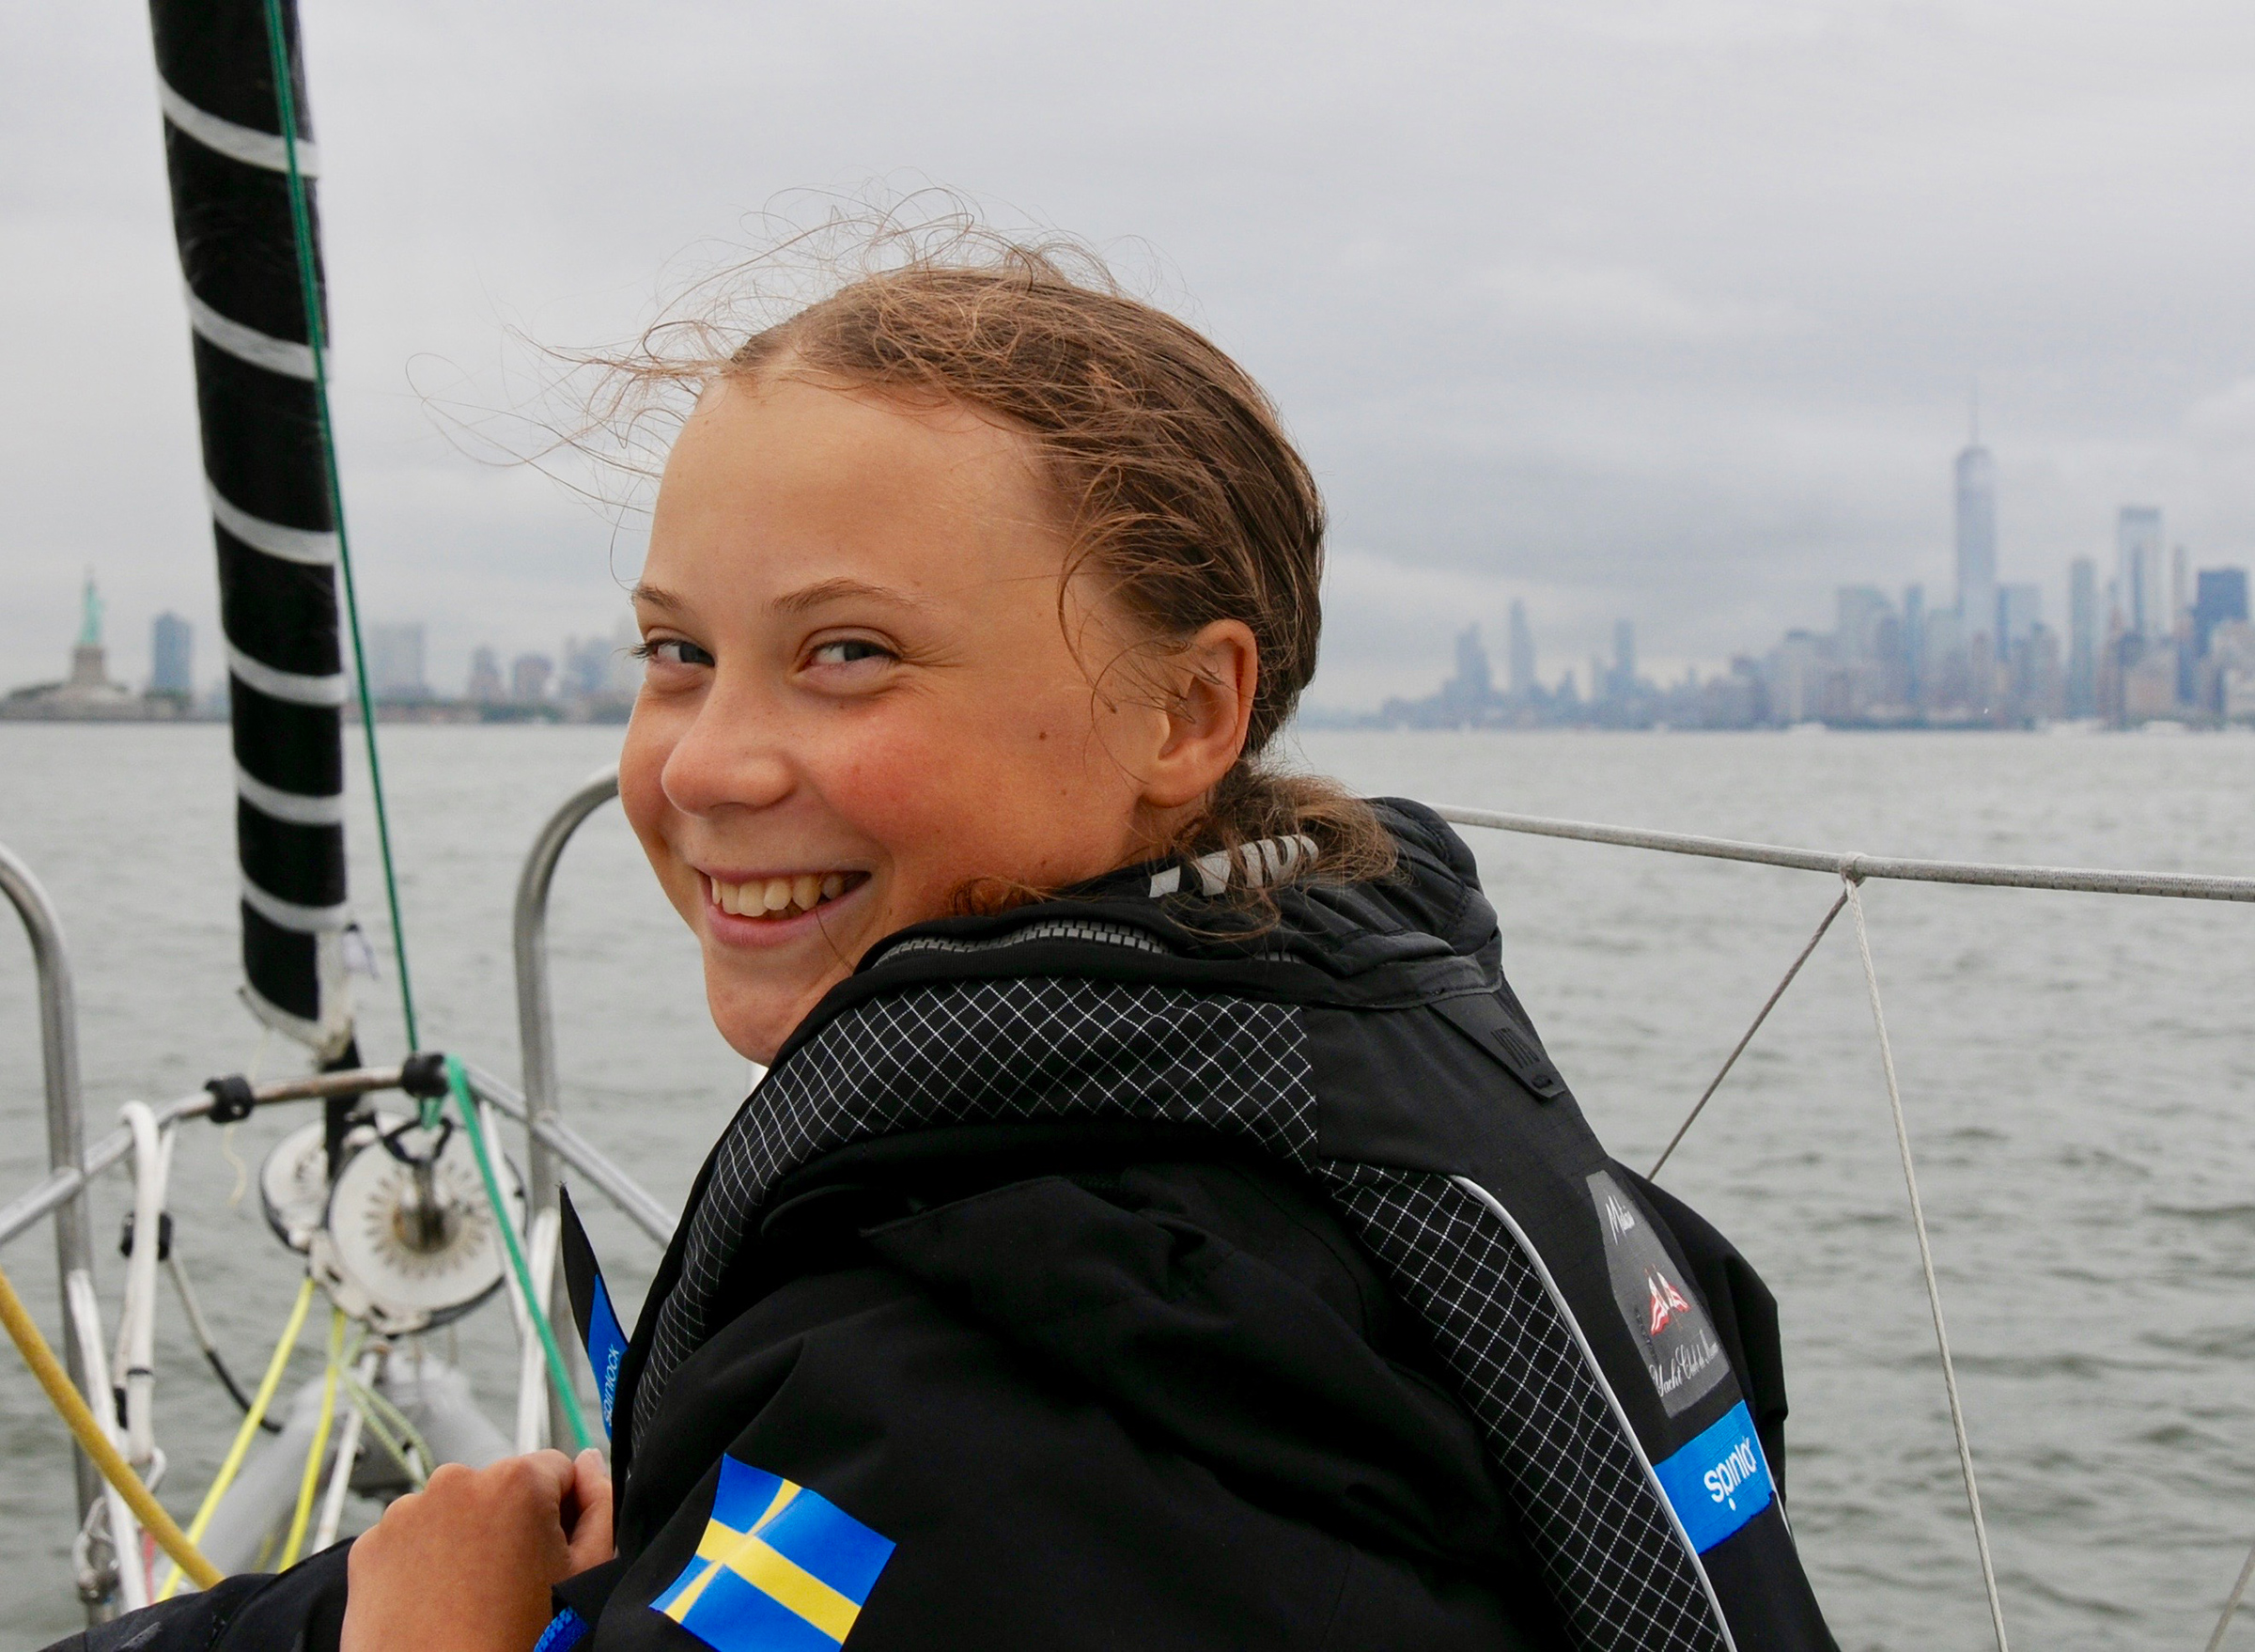 Thunberg arrives in New York City after a 15-day journey crossing the Atlantic on Aug. 28, 2019.